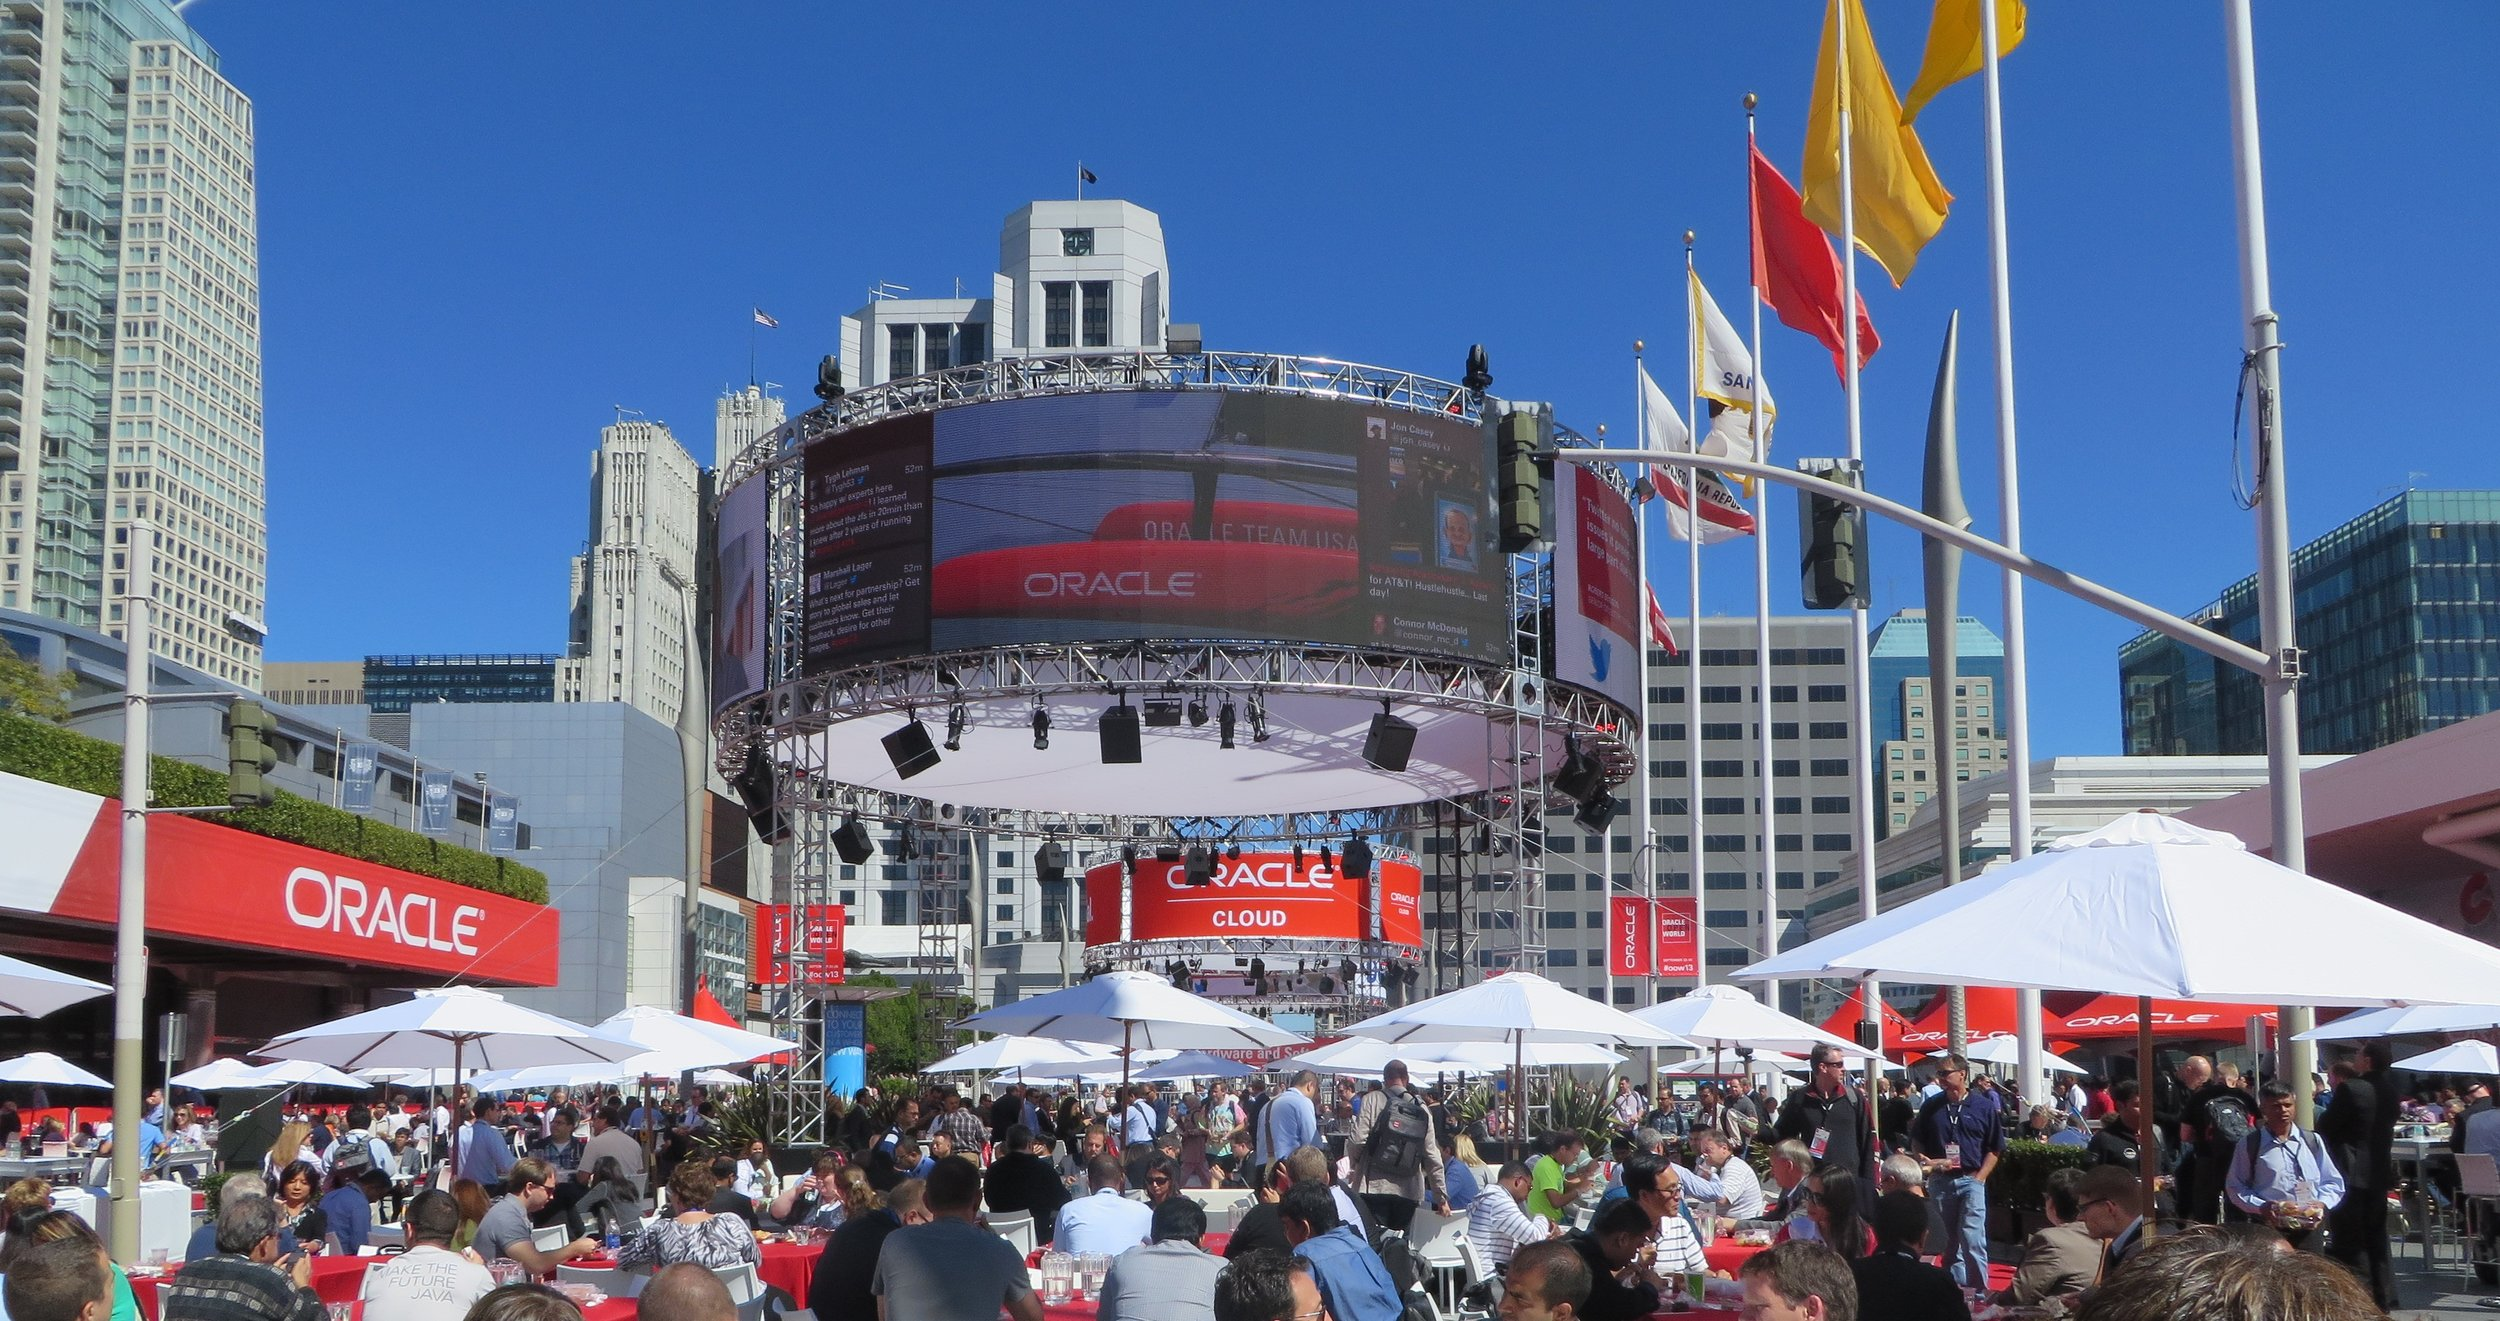 Dan and Tim Vlamis to Present at Oracle OpenWorld 16